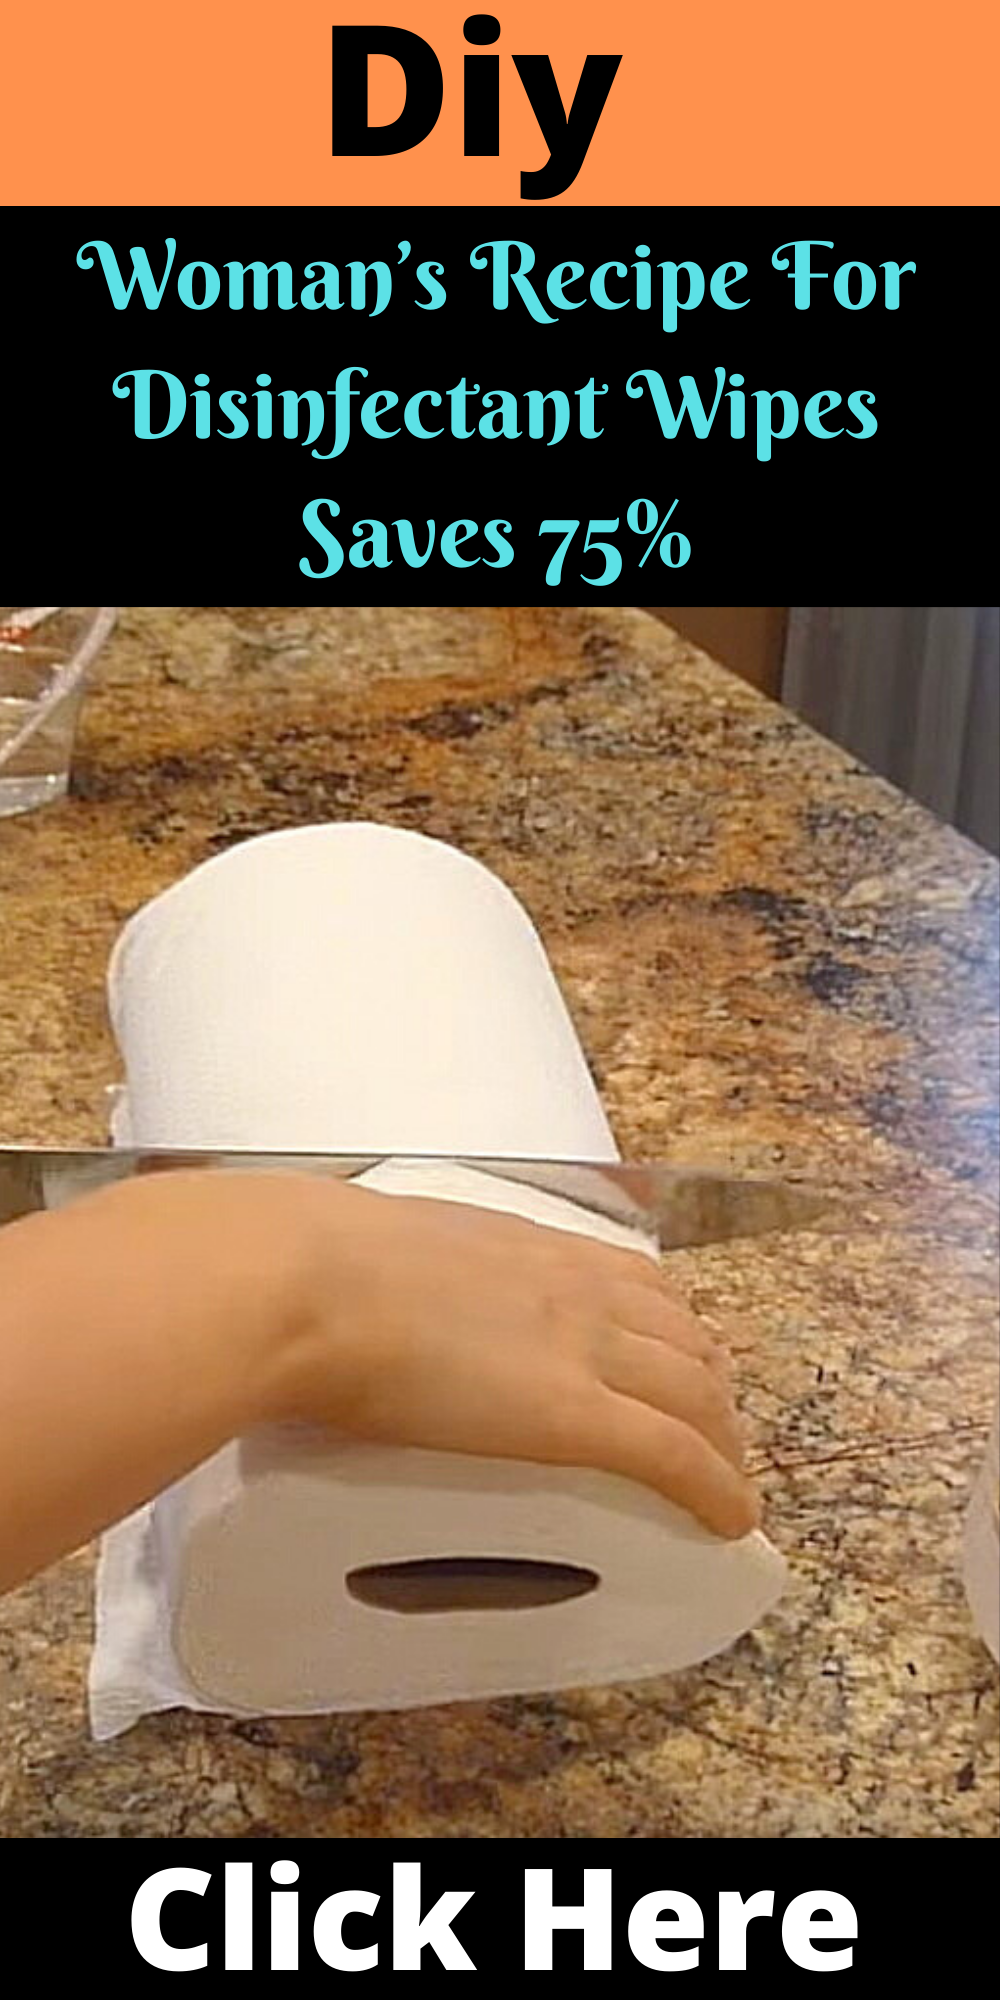 Woman's Recipe For Disinfectant Wipes Saves 75%